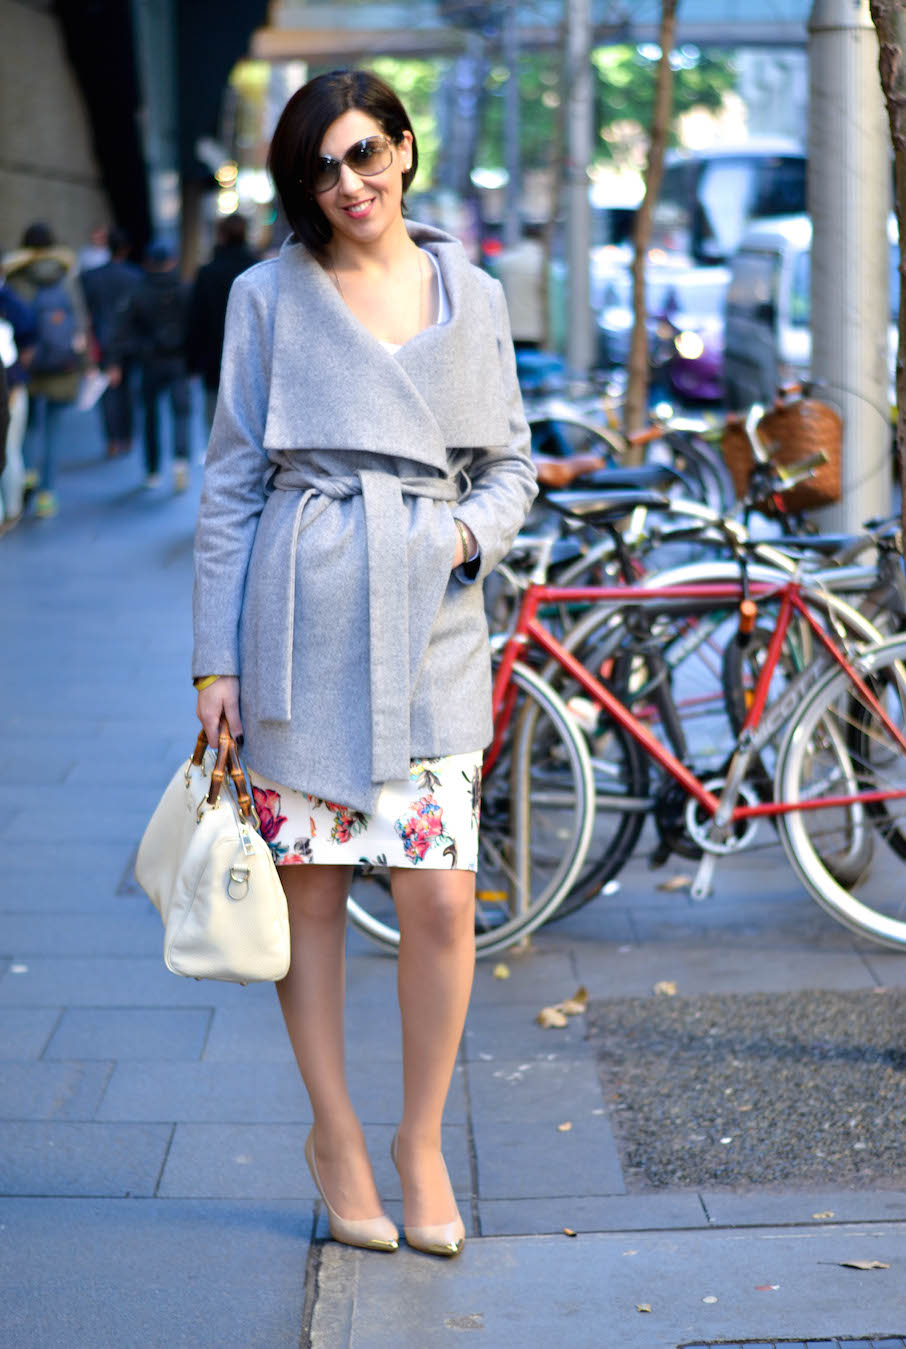 "NSW: Joanne Guidaci, events co-ordinator, Sydney CBD. ""I'd sum up my style as 'sexy elegance'."" Photo: Alice Scriberras"